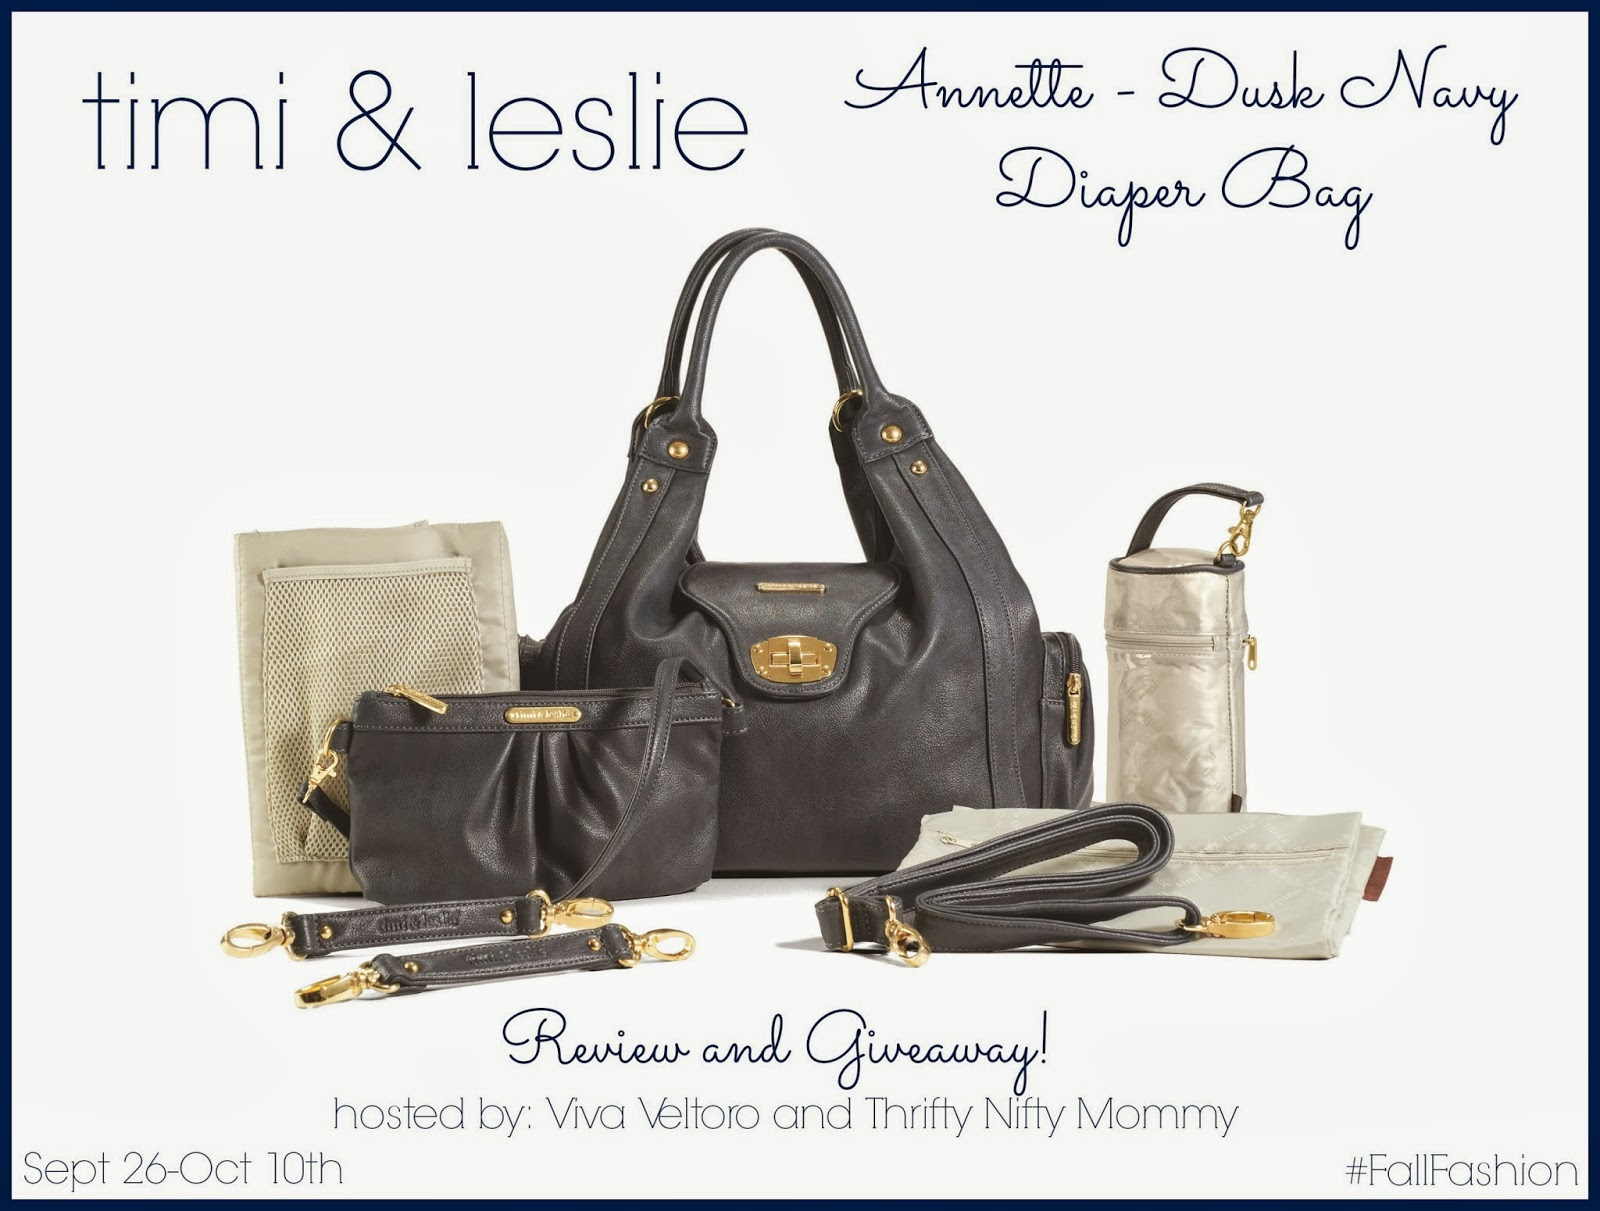 timi leslie annette diaper bag review viva veltoro. Black Bedroom Furniture Sets. Home Design Ideas